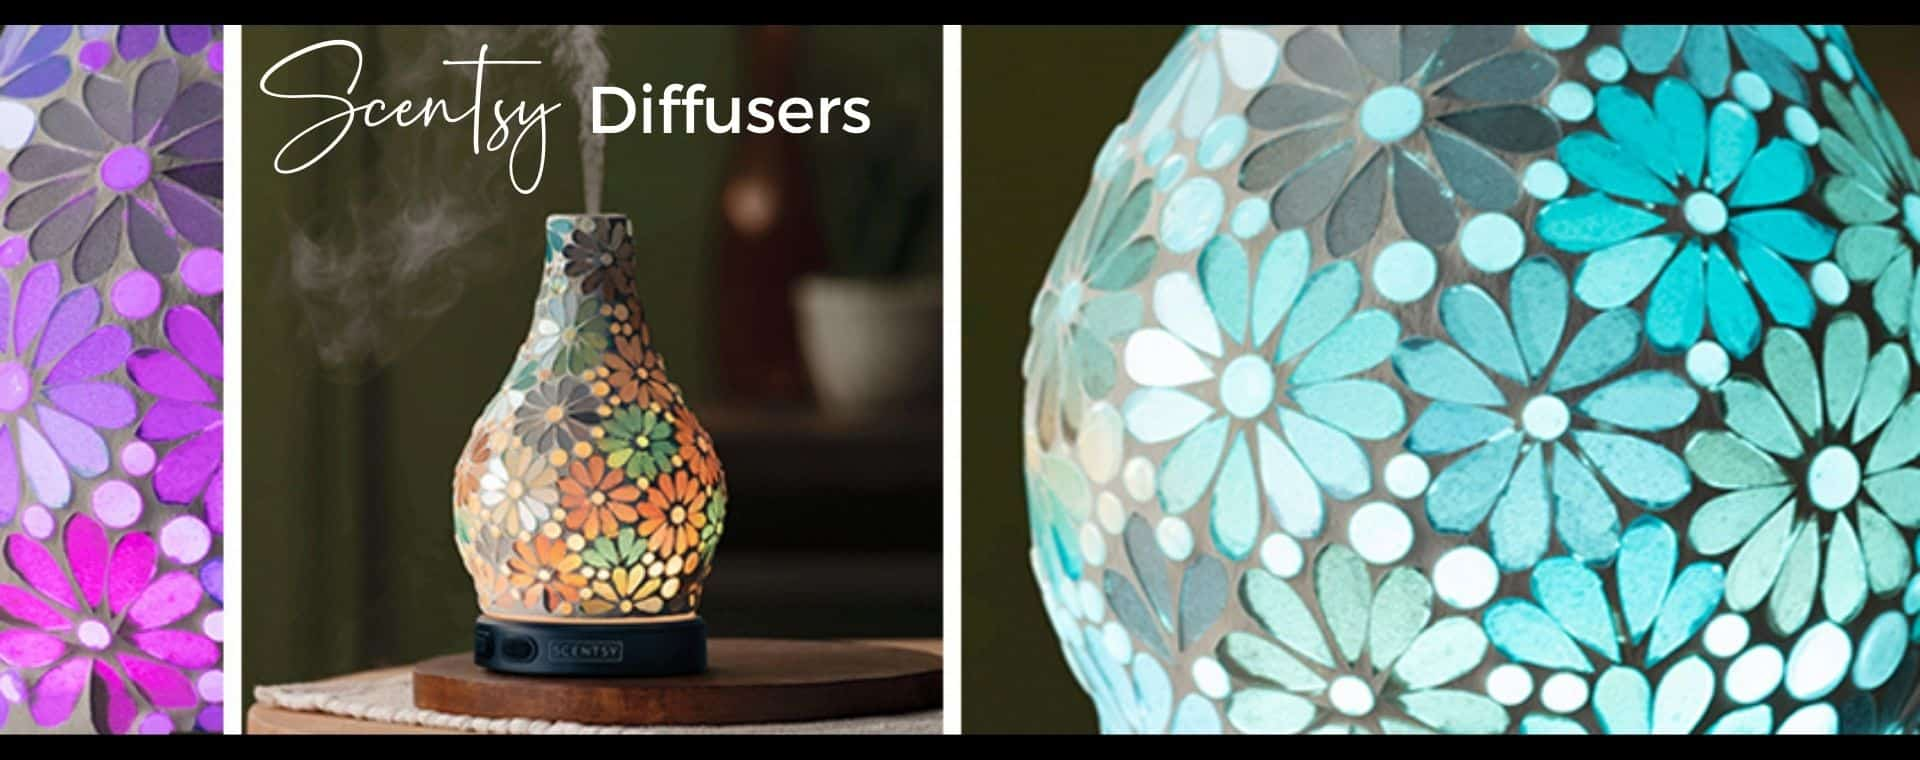 Scentsy Diffusers Fall 2021 1